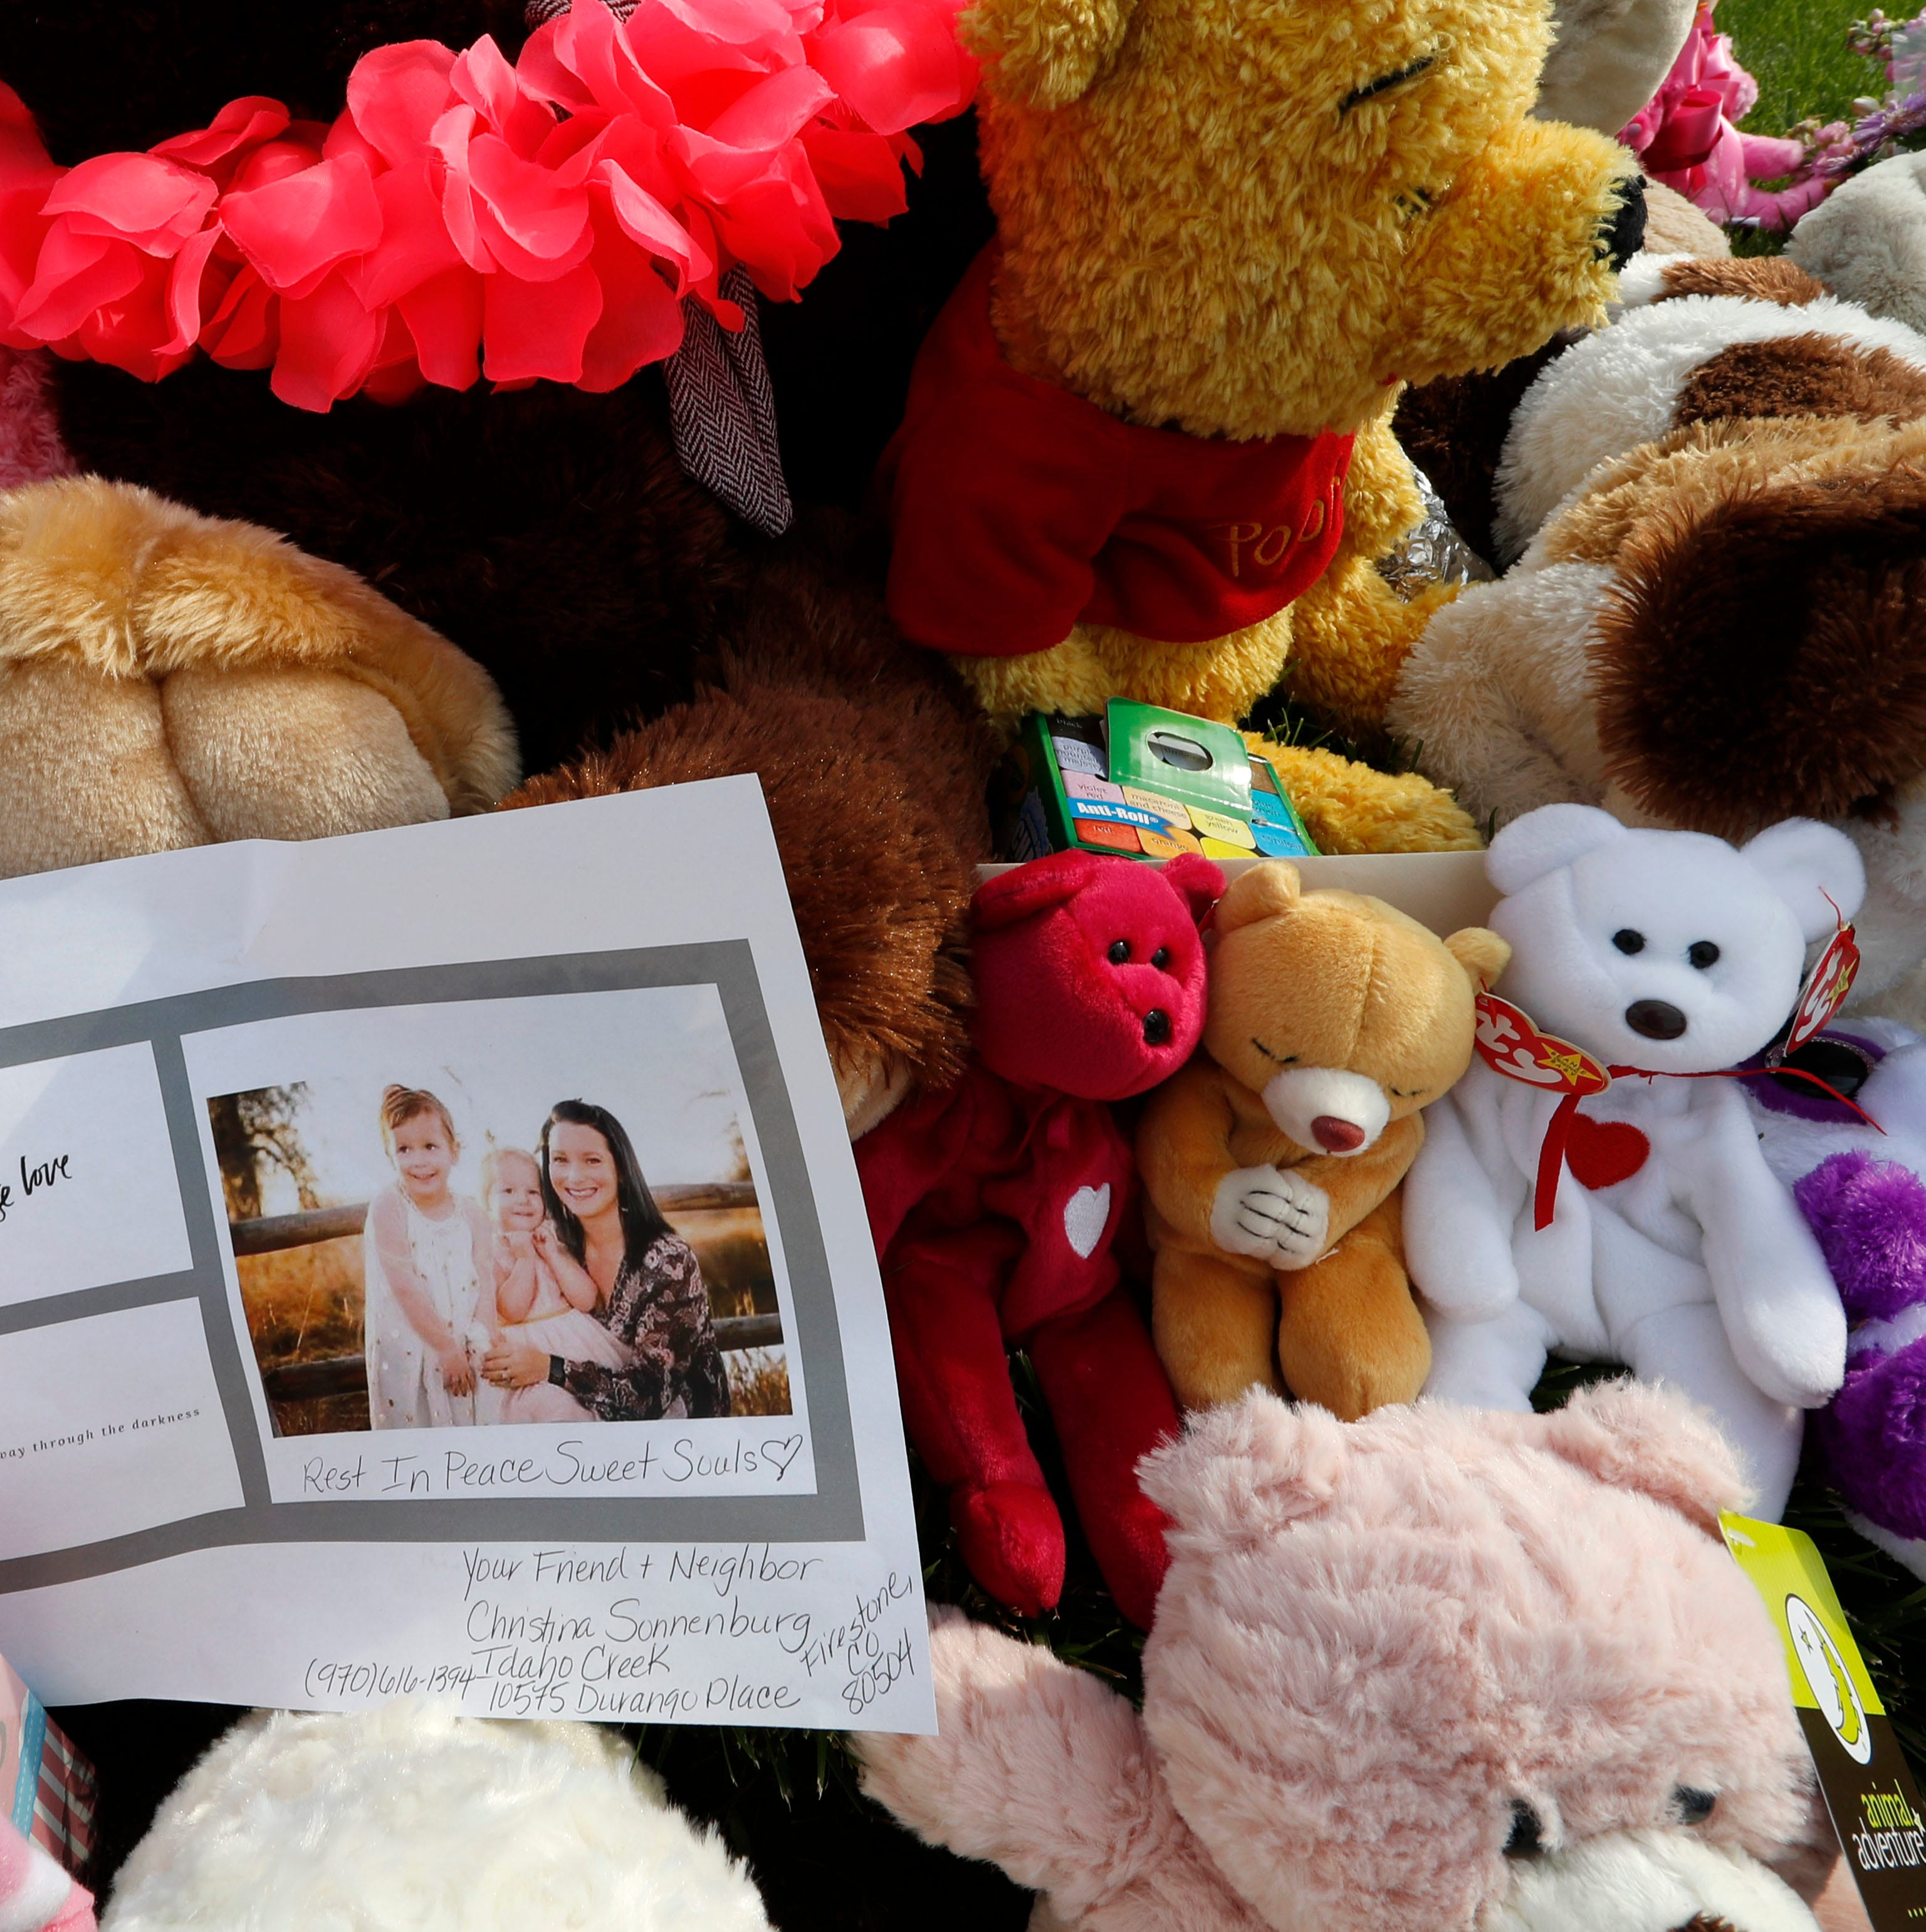 Authorities prepare to file charges in Colorado family killings